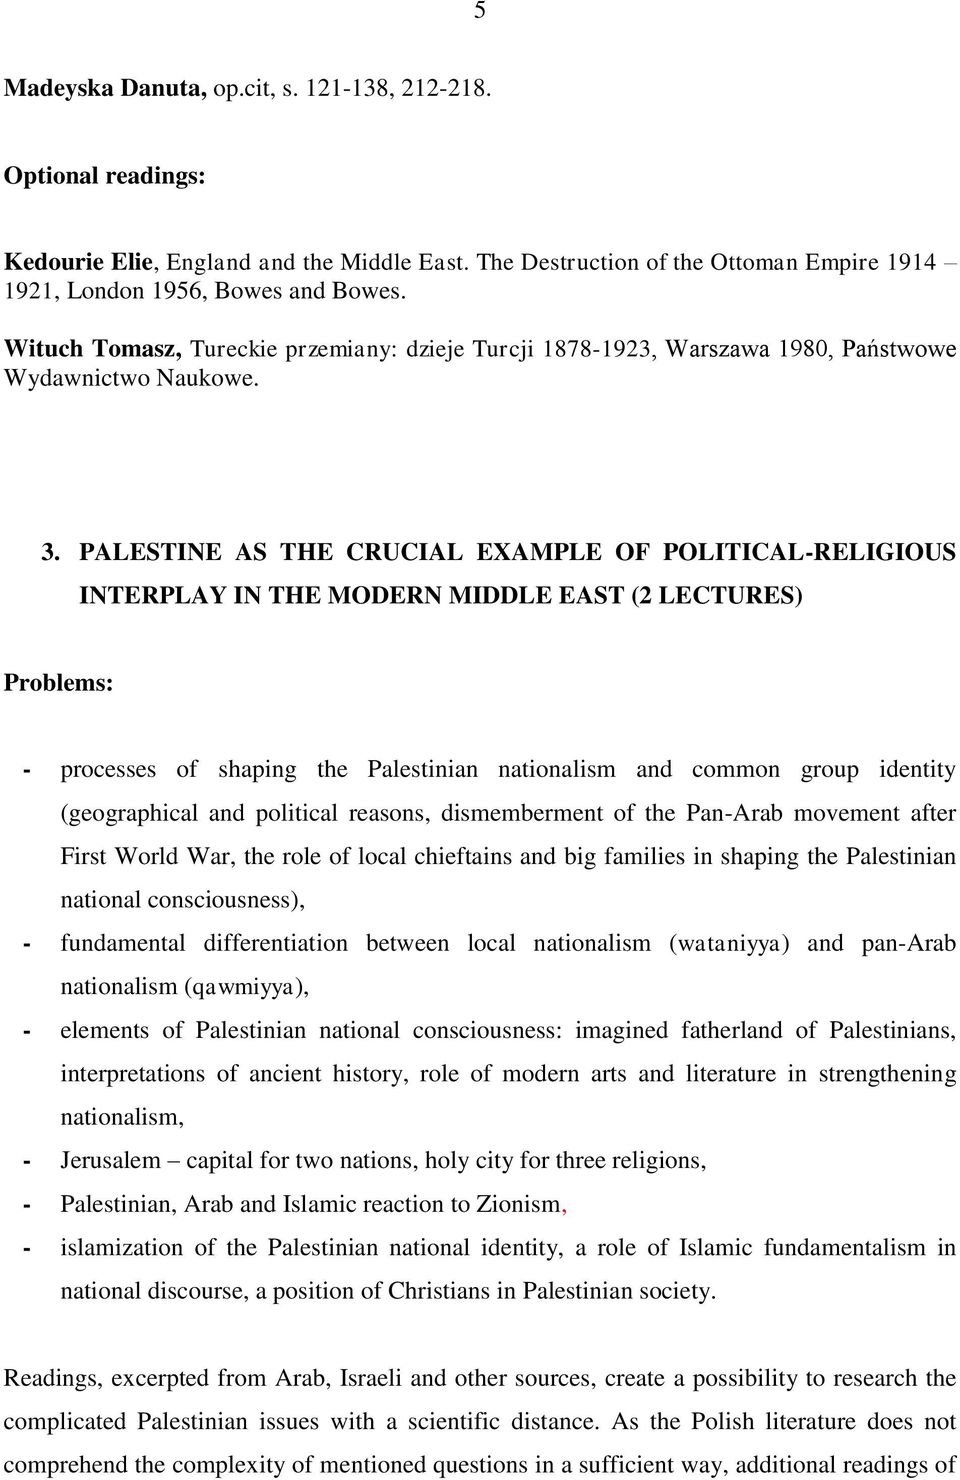 PALESTINE AS THE CRUCIAL EXAMPLE OF POLITICAL-RELIGIOUS INTERPLAY IN THE MODERN MIDDLE EAST (2 LECTURES) - processes of shaping the Palestinian nationalism and common group identity (geographical and